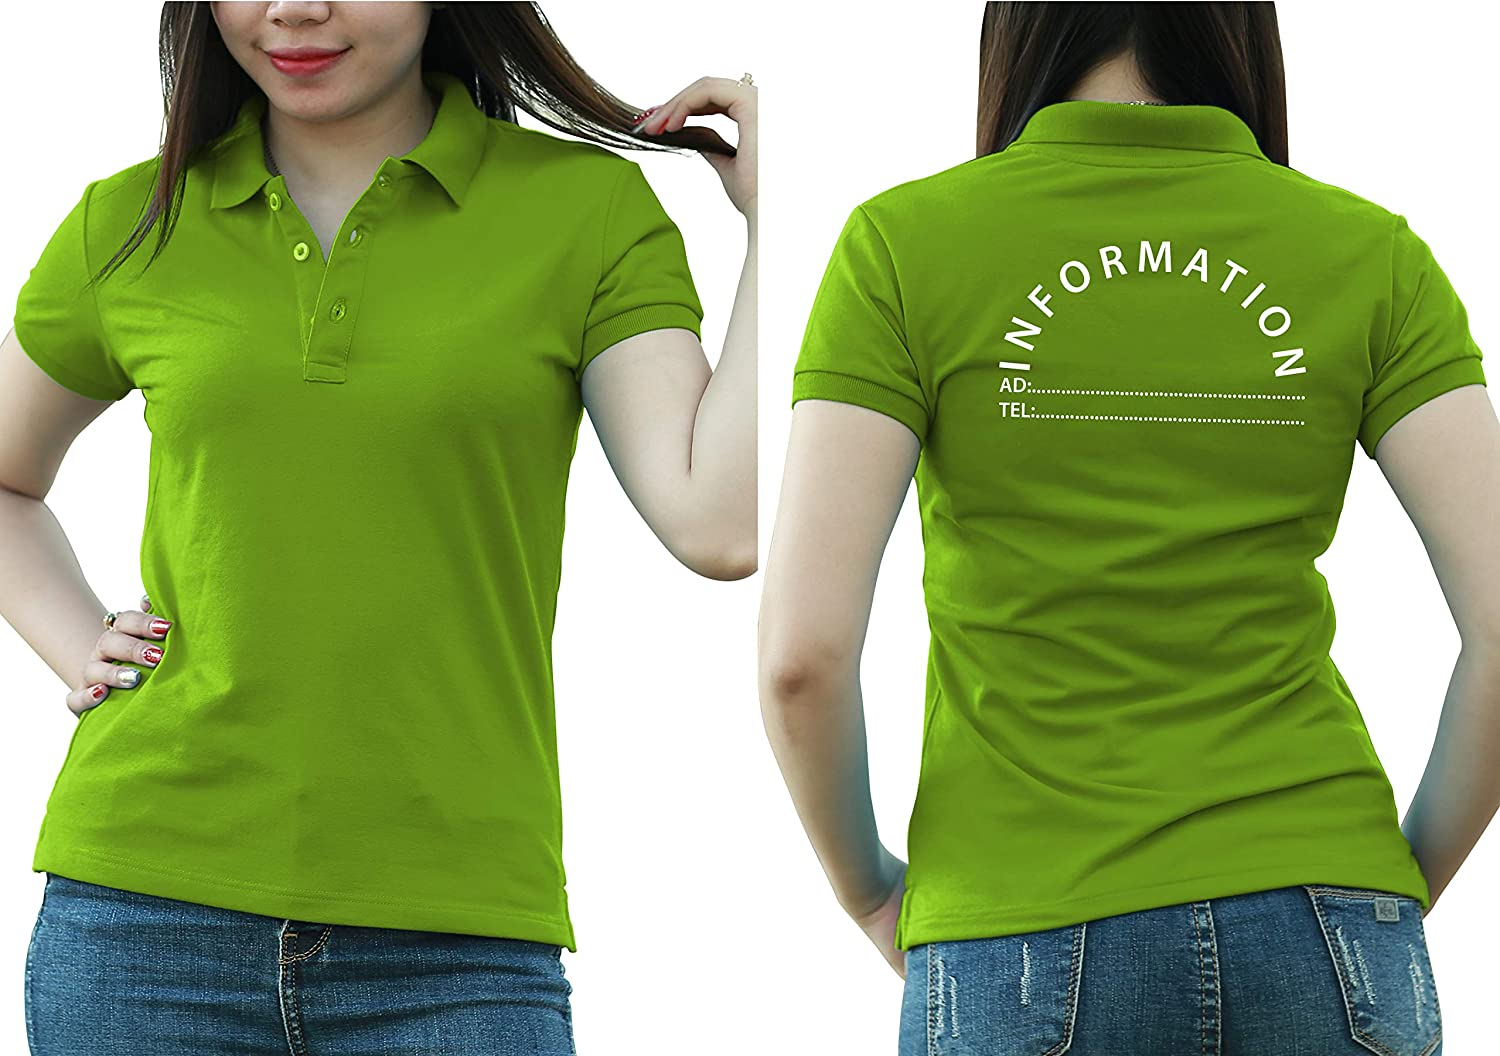 Add Custom Personalize Your Logo Text. Print On Polo & T-Shirt with Multi Sides –Sizes - Colors. Pack of 10 Green